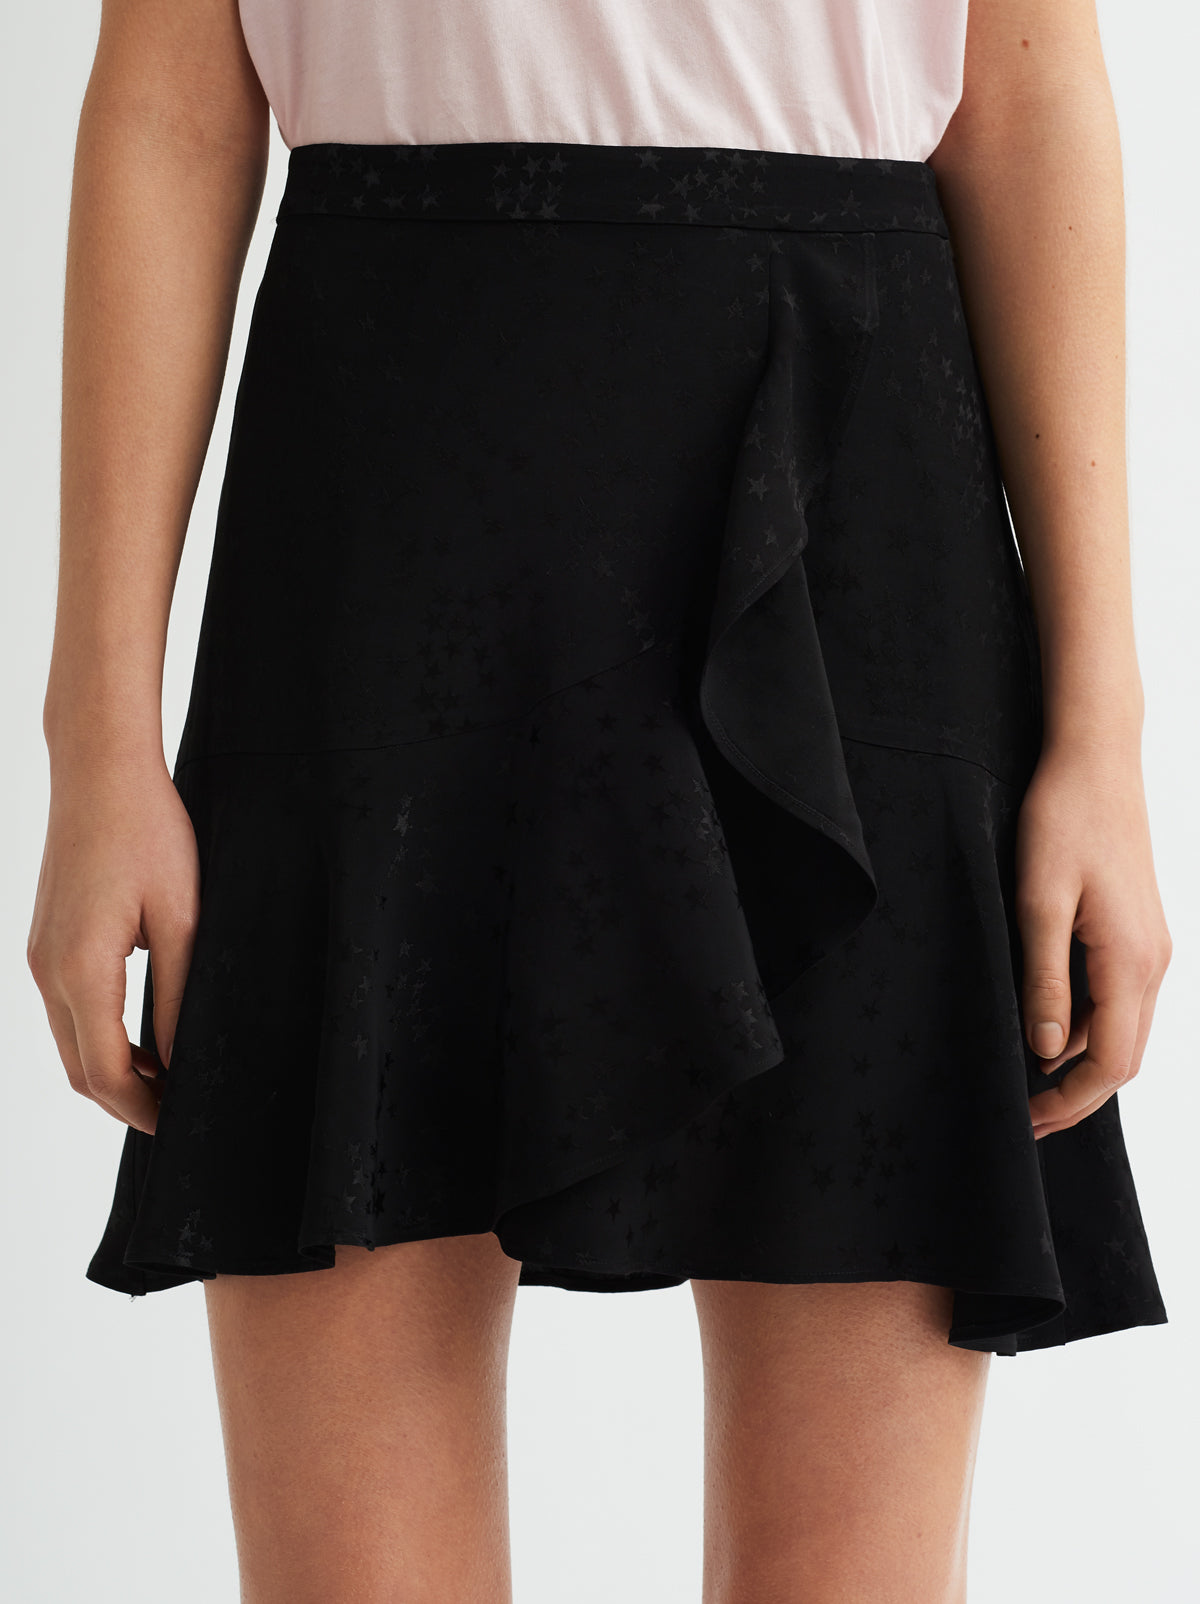 Sasha Black Frill Mini Skirt by KITRI Studio